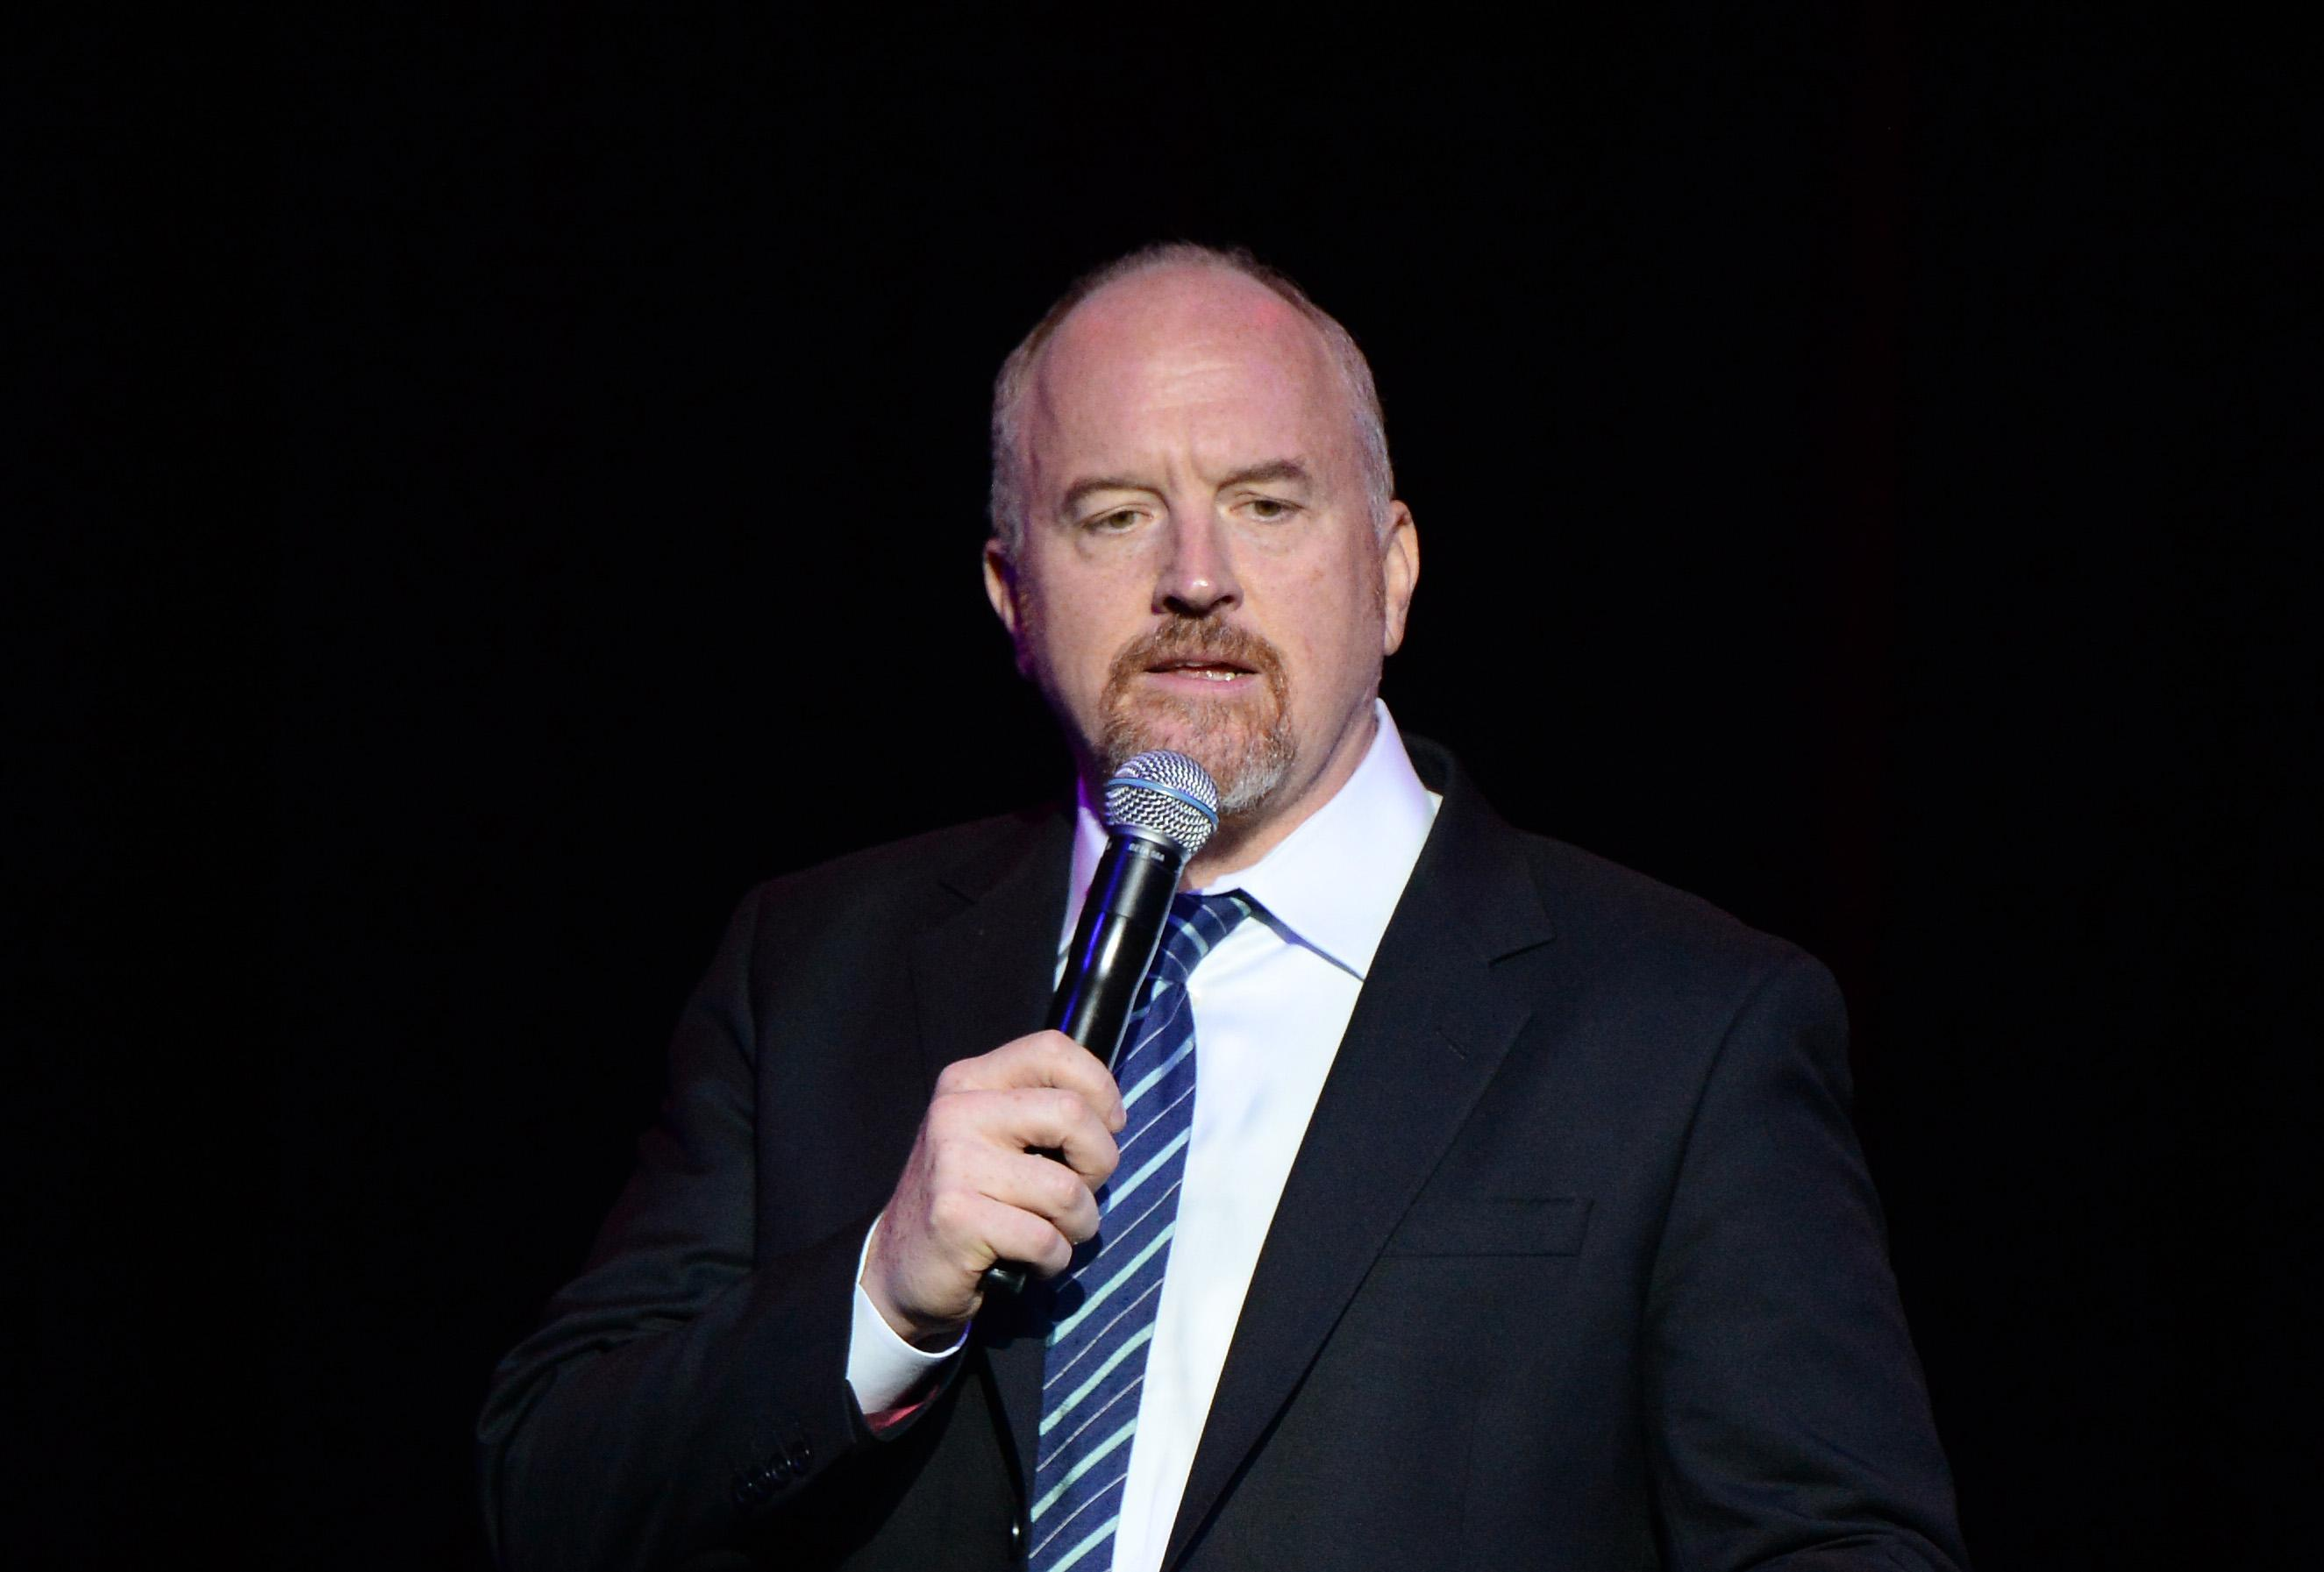 Louis CK Exposed - FIVE Women Come Forward With Accusations Of Sexual Misconduct!